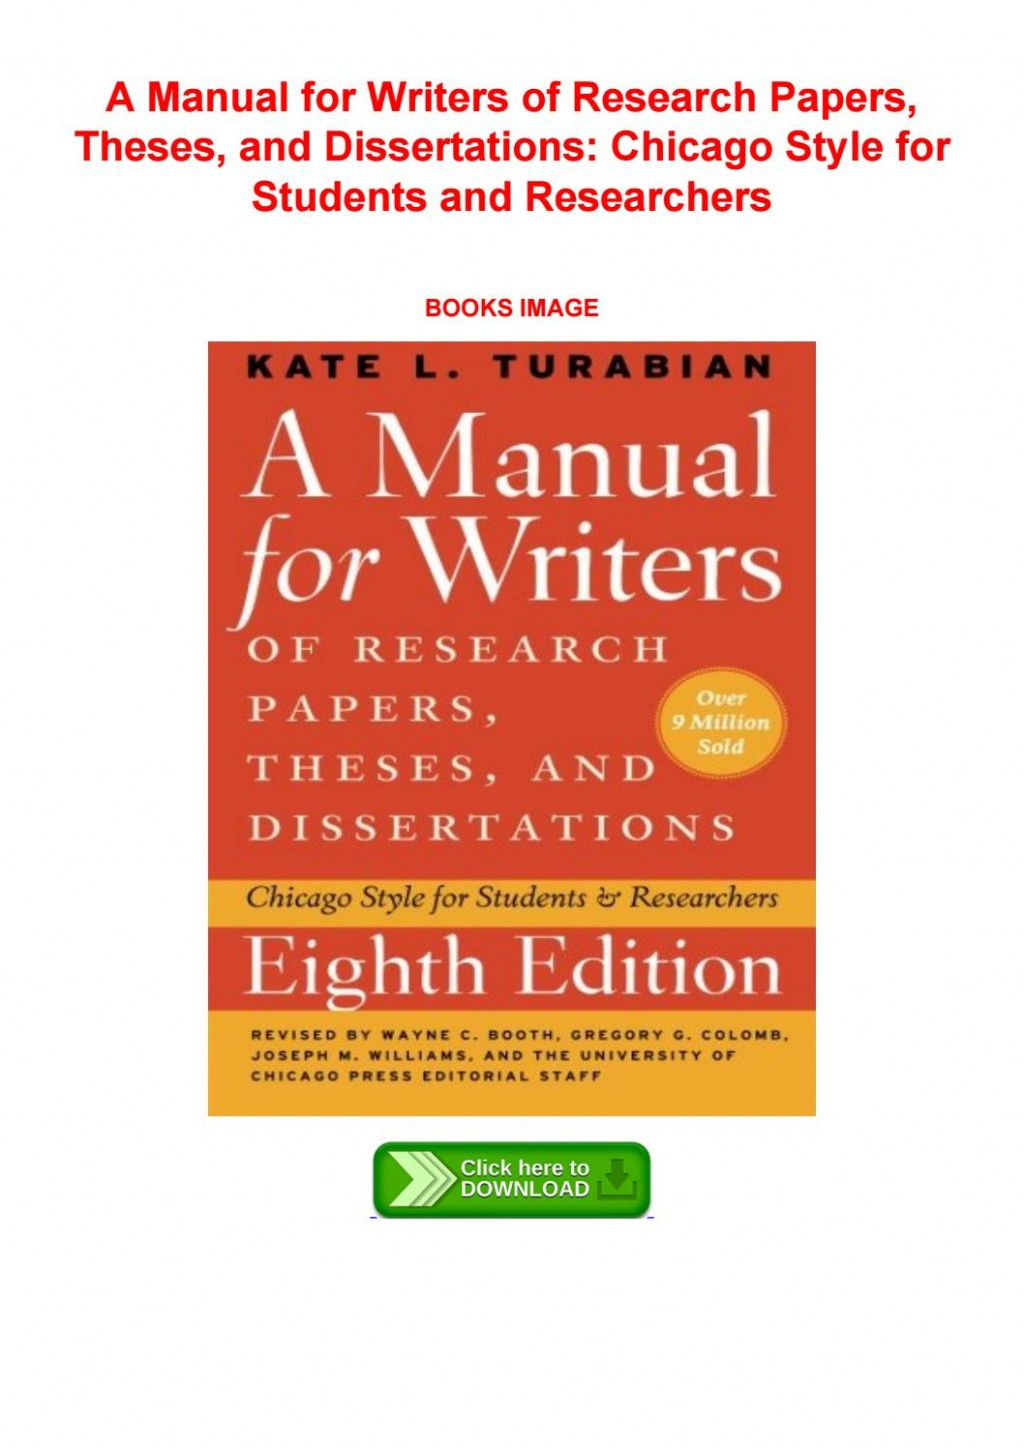 015 Research Paper Page 1 Manual For Writers Of Papers Theses And Dissertations 8th Staggering A Edition Pdf Large